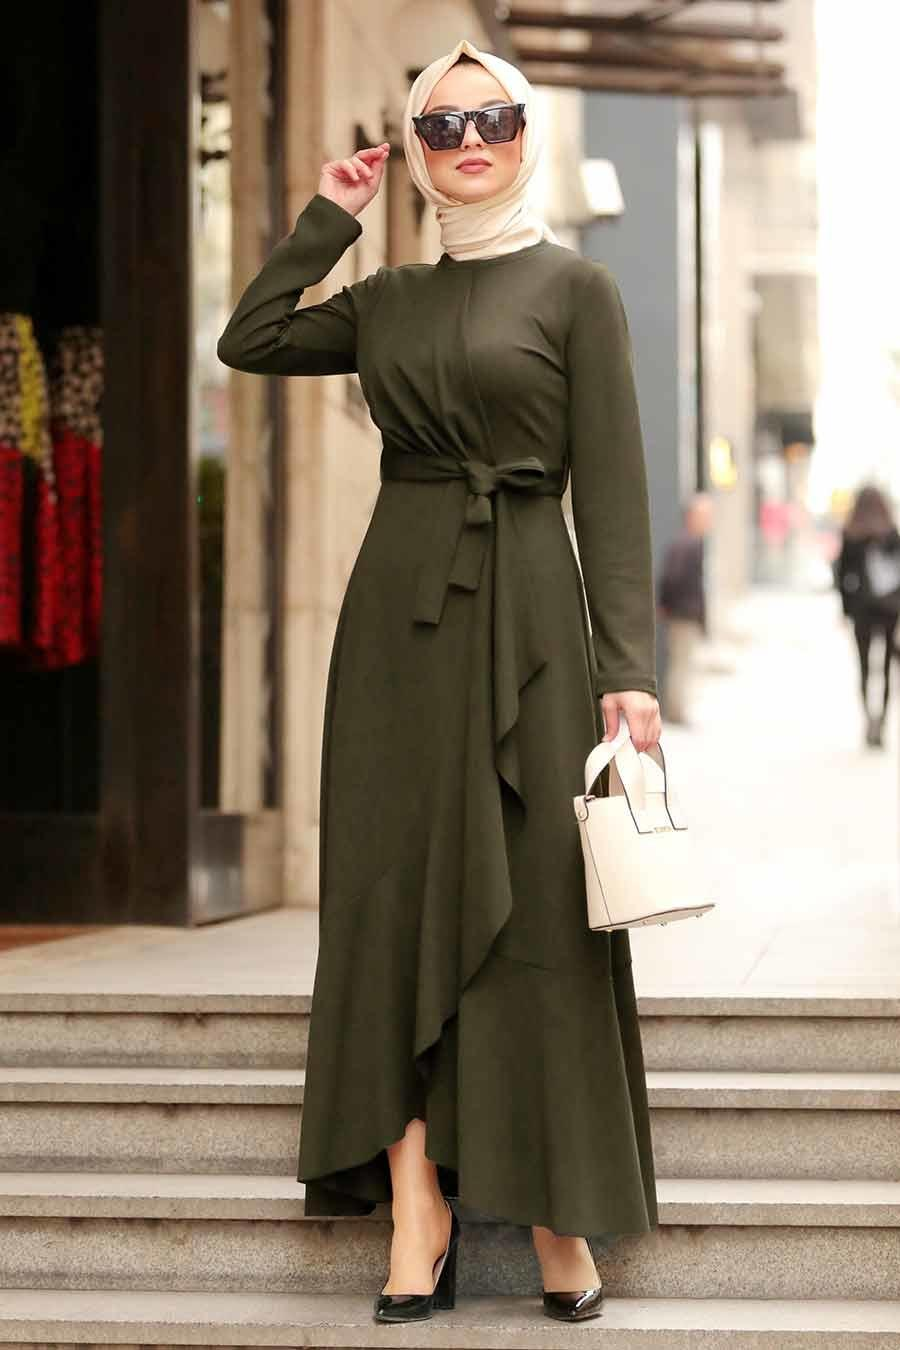 Belted Khaki Dress